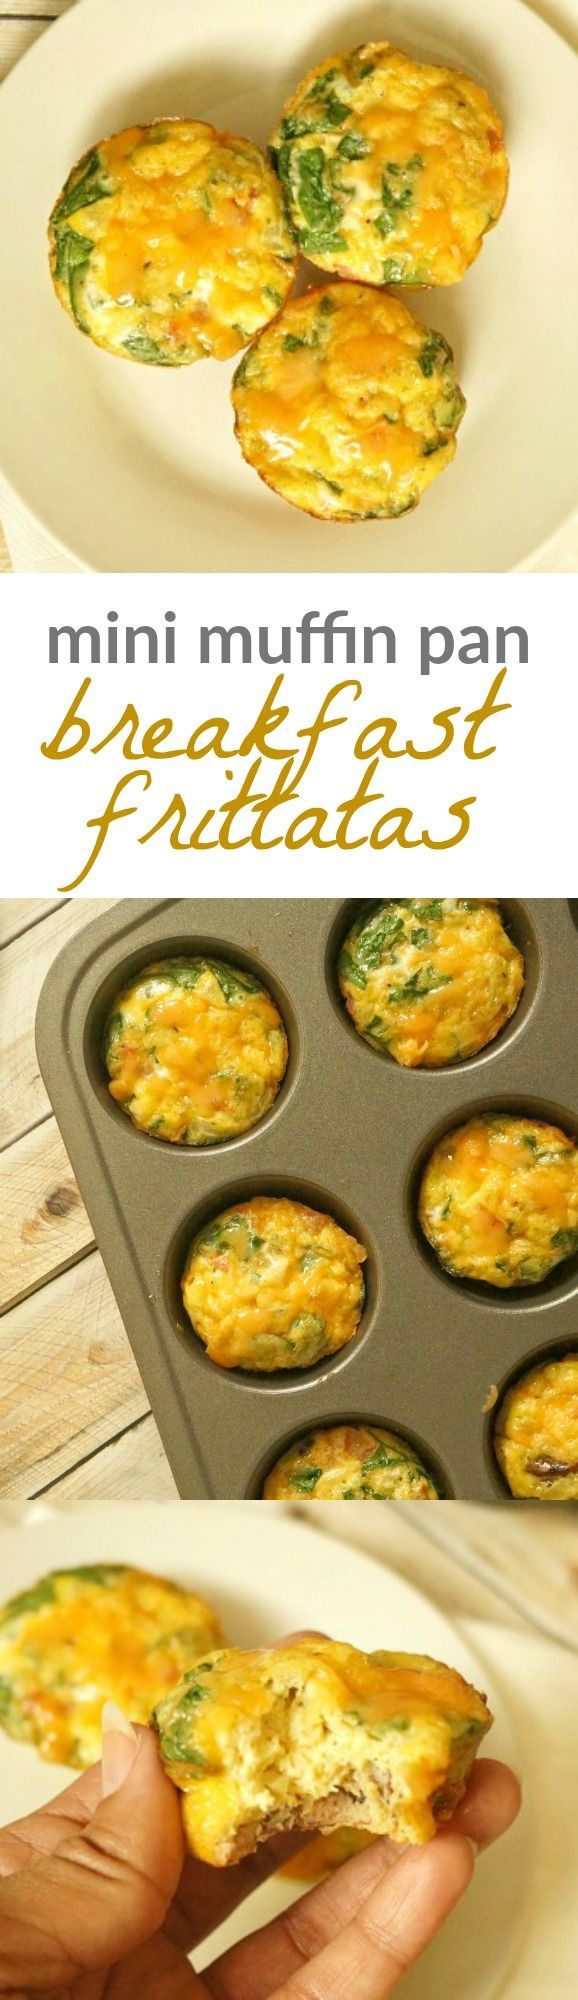 Healthy Egg and Veggie Mini Breakfast Frittatas, perfect to make ahead for a quick morning breakfast!